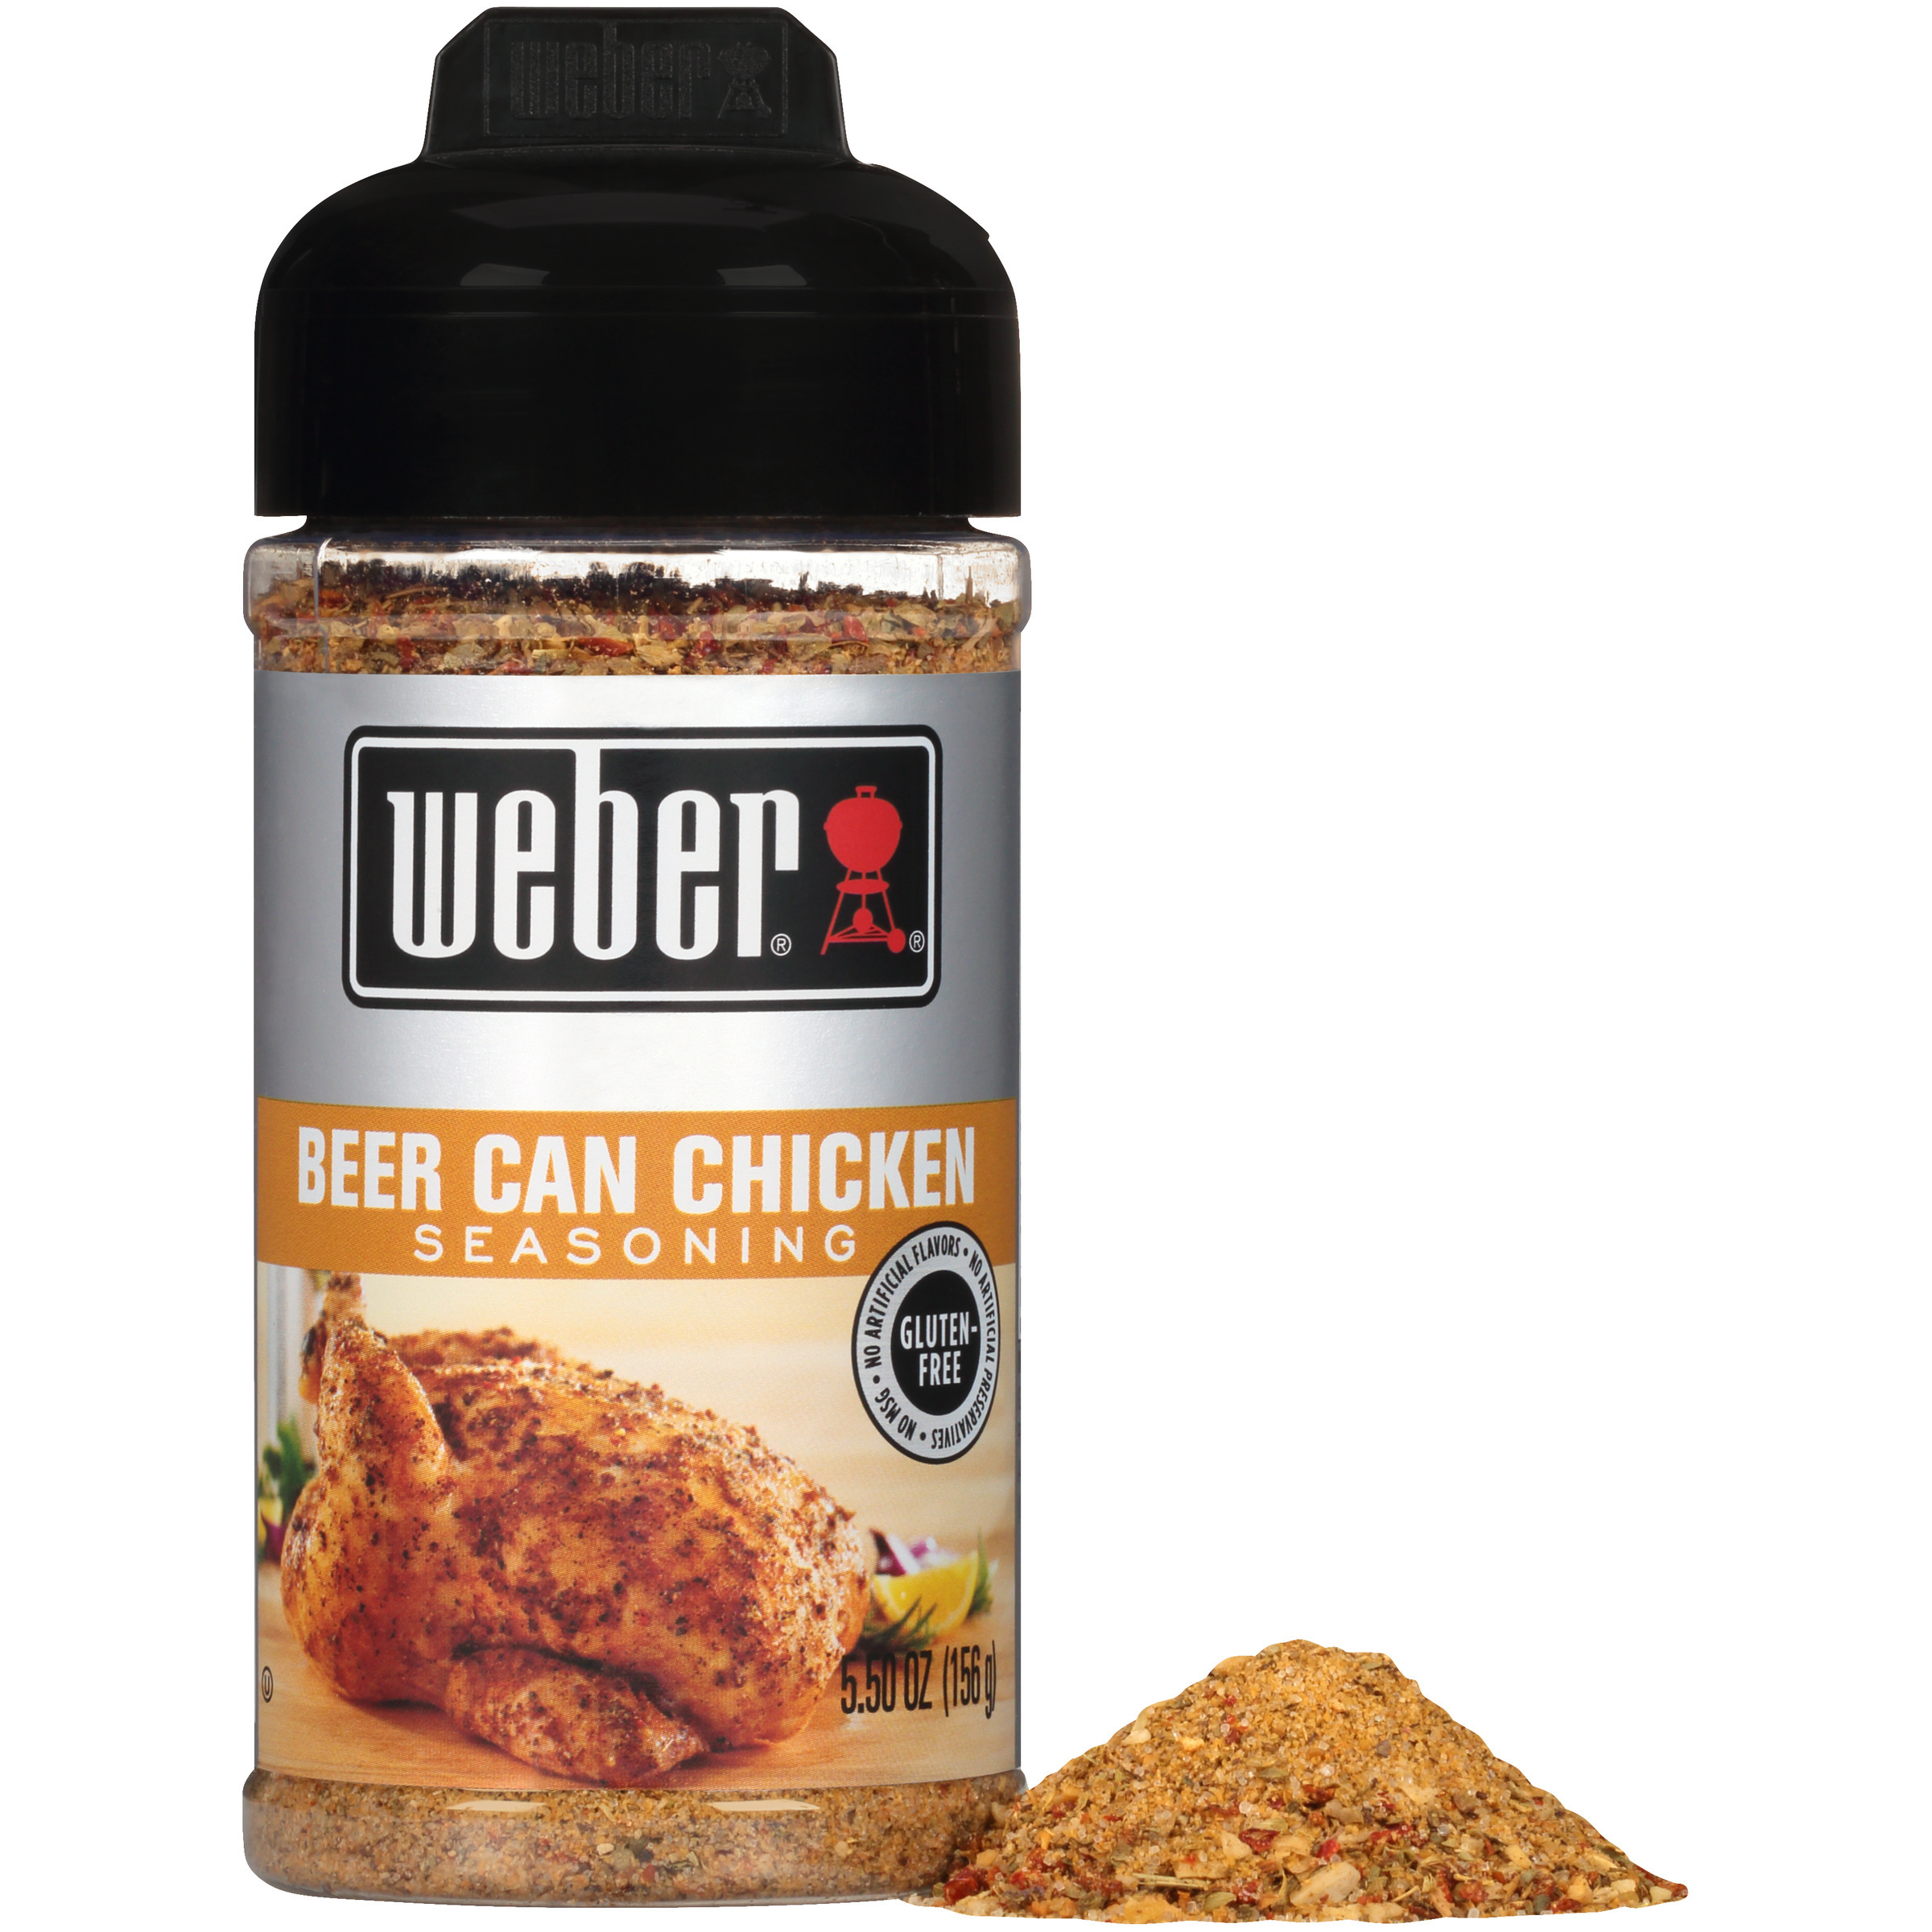 Weber Beer Can Chicken Seasoning 5 5 Oz Shaker Walmart Com Walmart Com